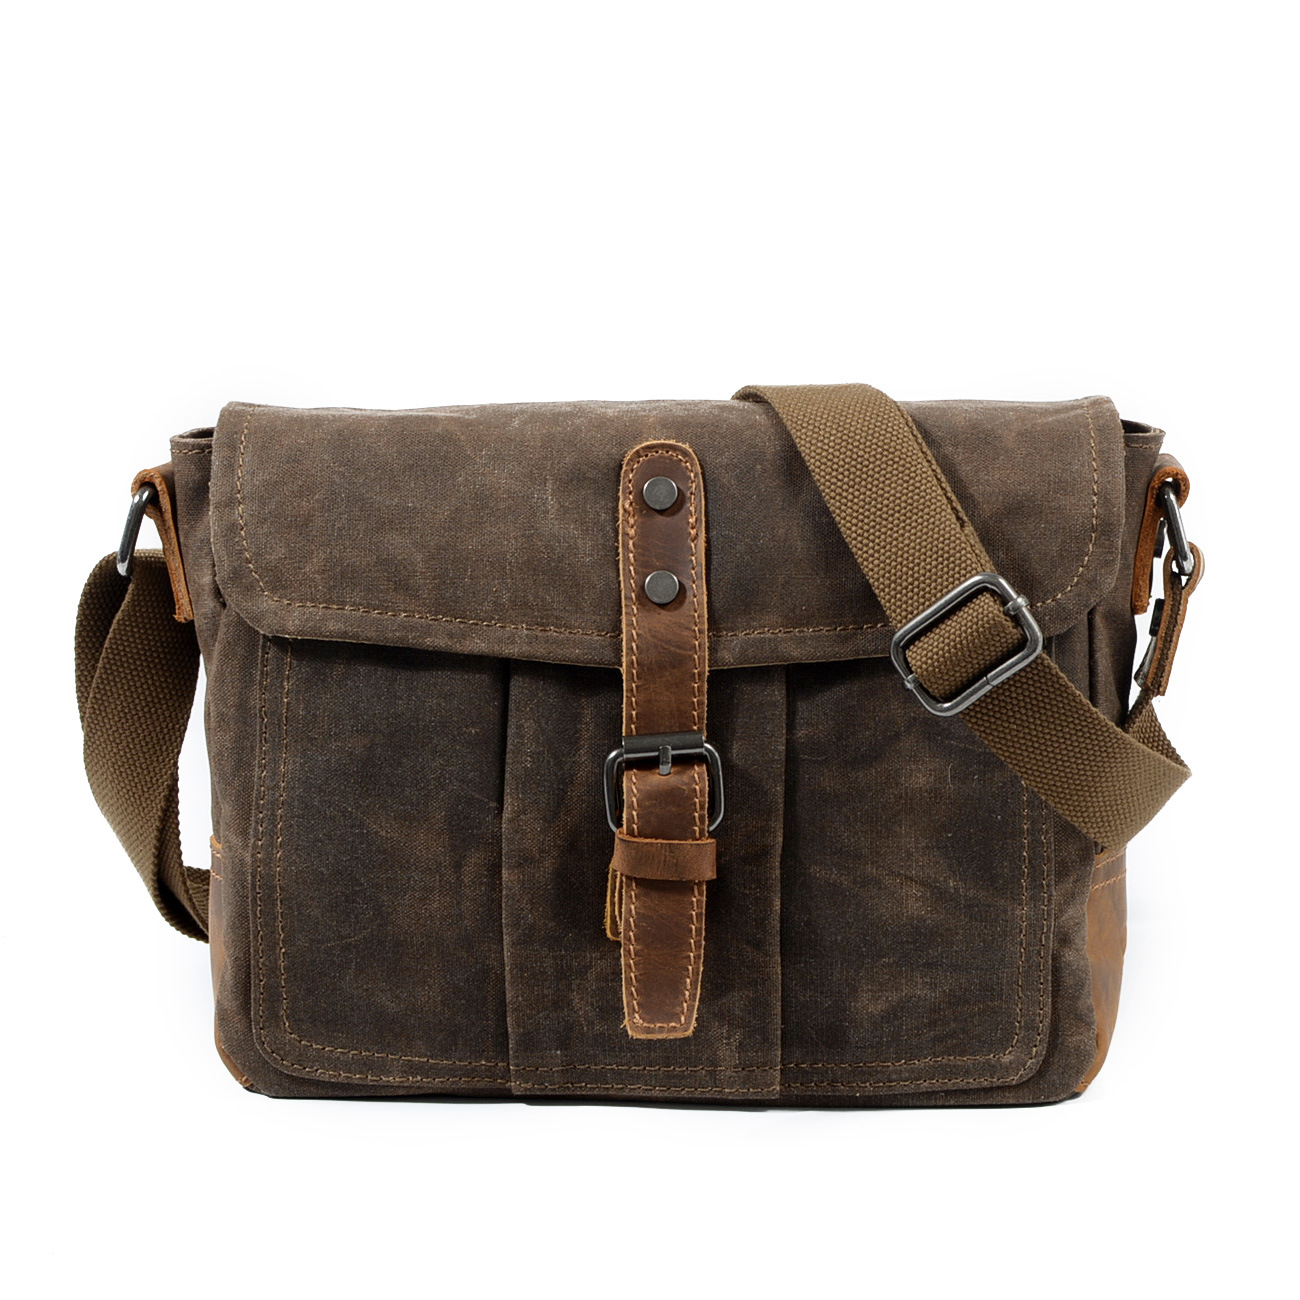 Us 30 76 5 Off Brand Messenger Bag Men S Single Shoulder High Quality Waterproof Waxed Canvas For Man Casual Crossbody Bags In